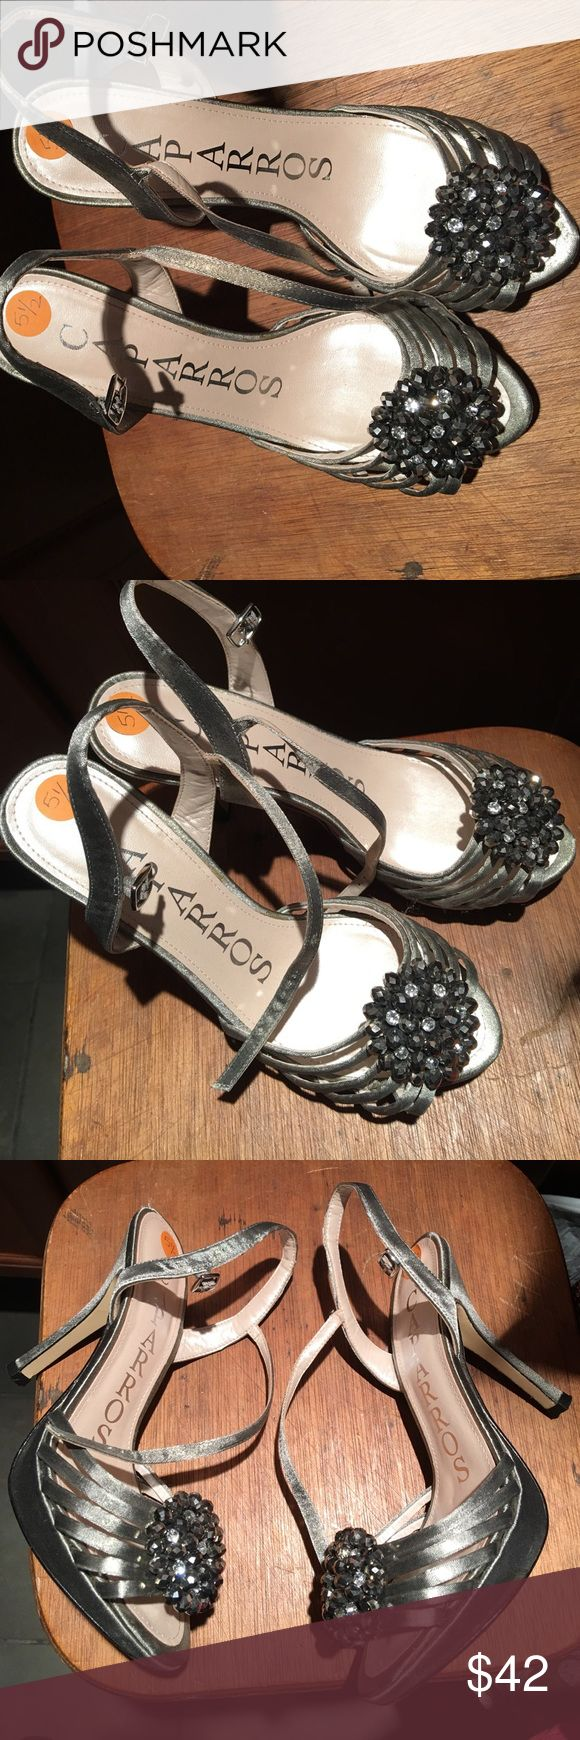 Caparros metallic silver sandals Bling! Metallic silver heels..great for evening wear or formal attire. Sole is leather. Minimal wear & tear! Caparros Shoes Heels